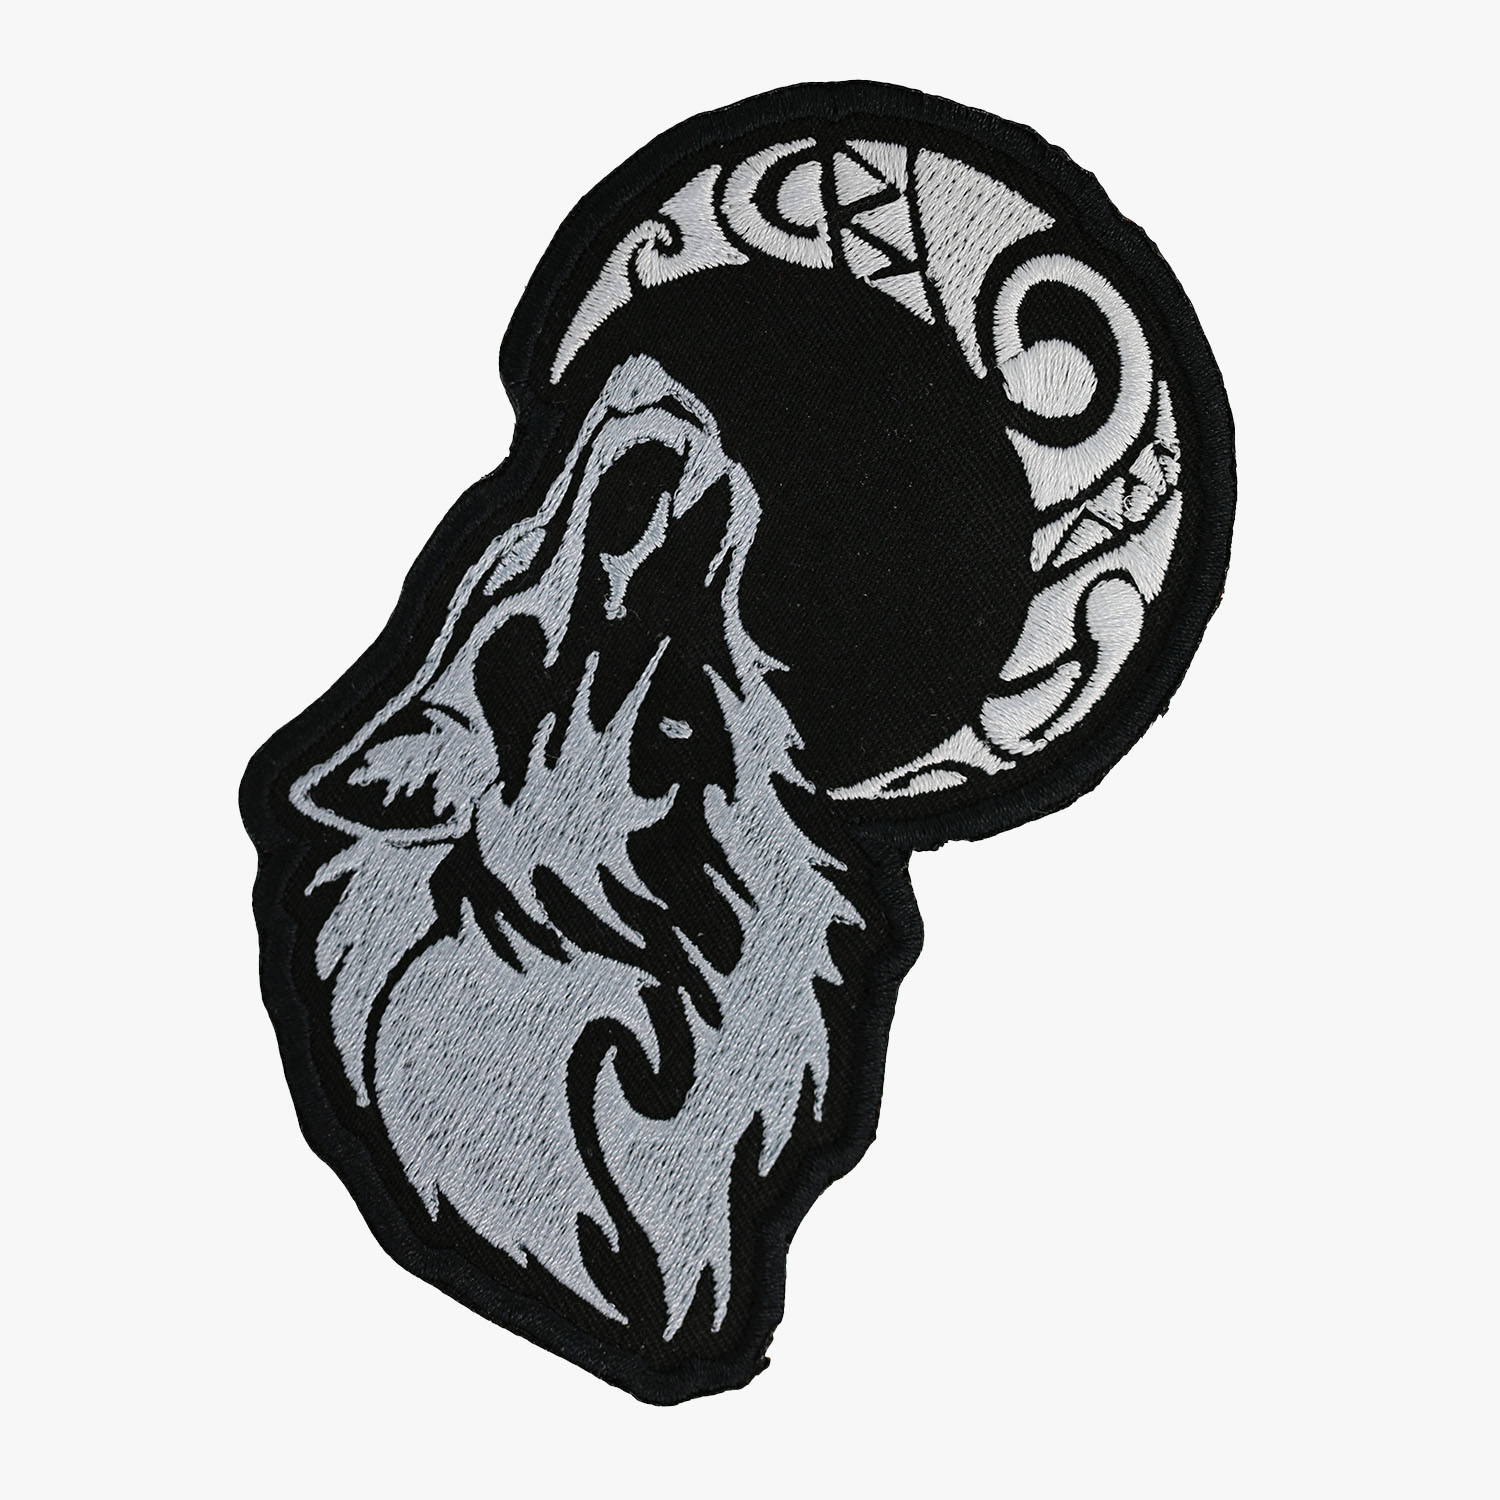 Howling Moon Wolf Motorcycle Club Embroidered Biker Patch